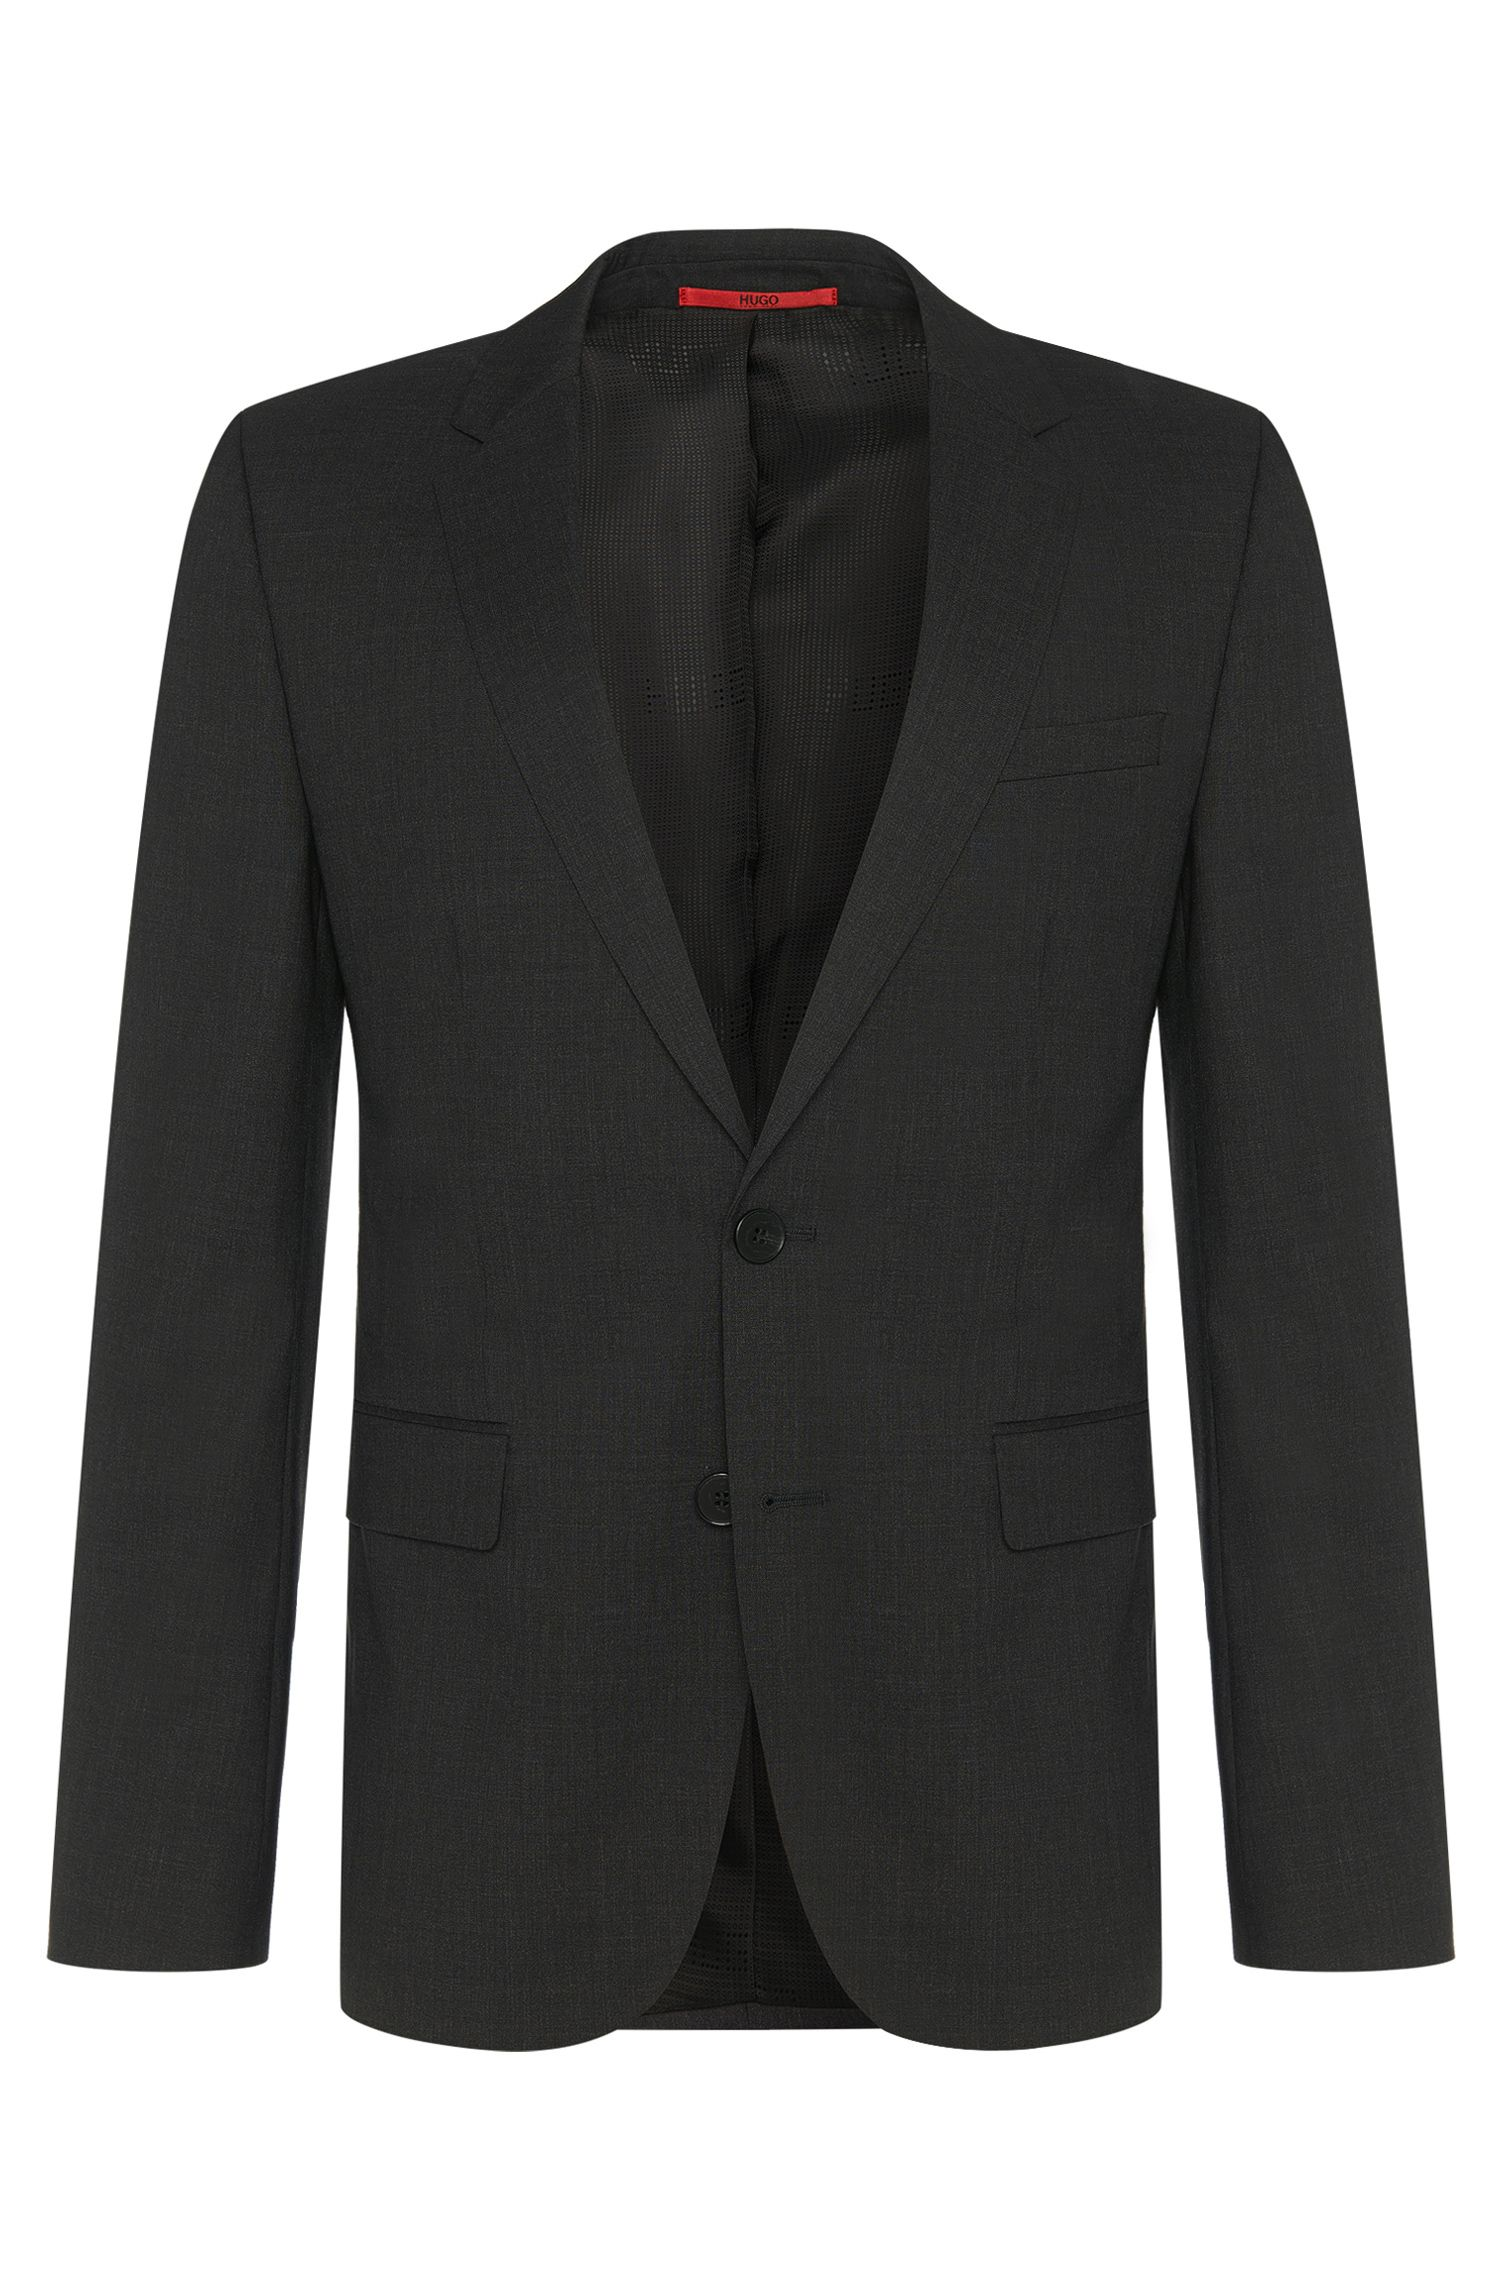 Veste de costume Slim Fit en laine vierge stretch : « AlanS »